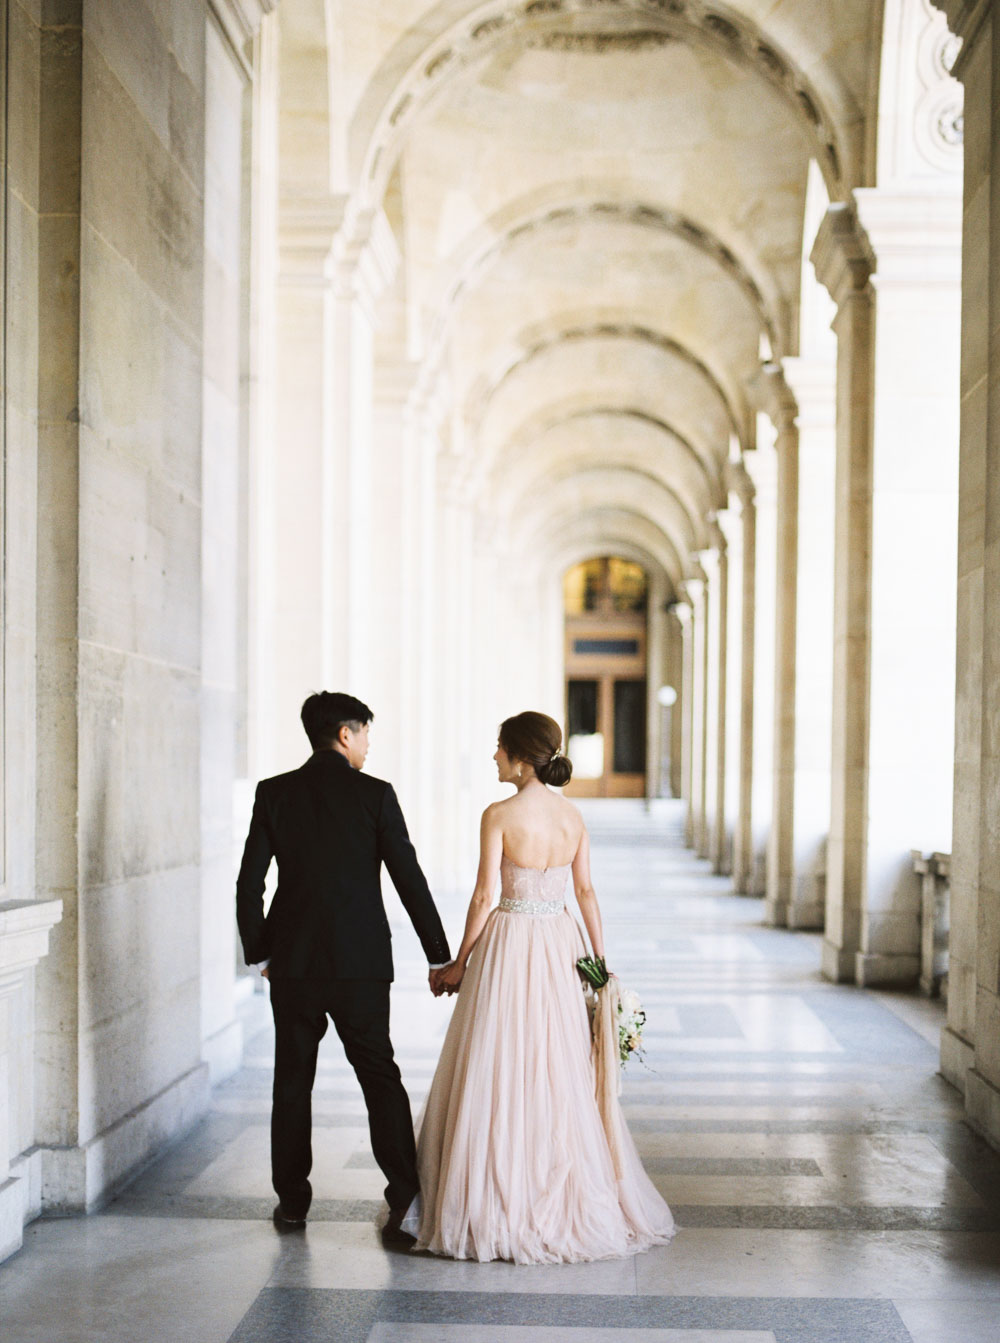 Paris overseas pre-wedding 巴黎婚紗攝影